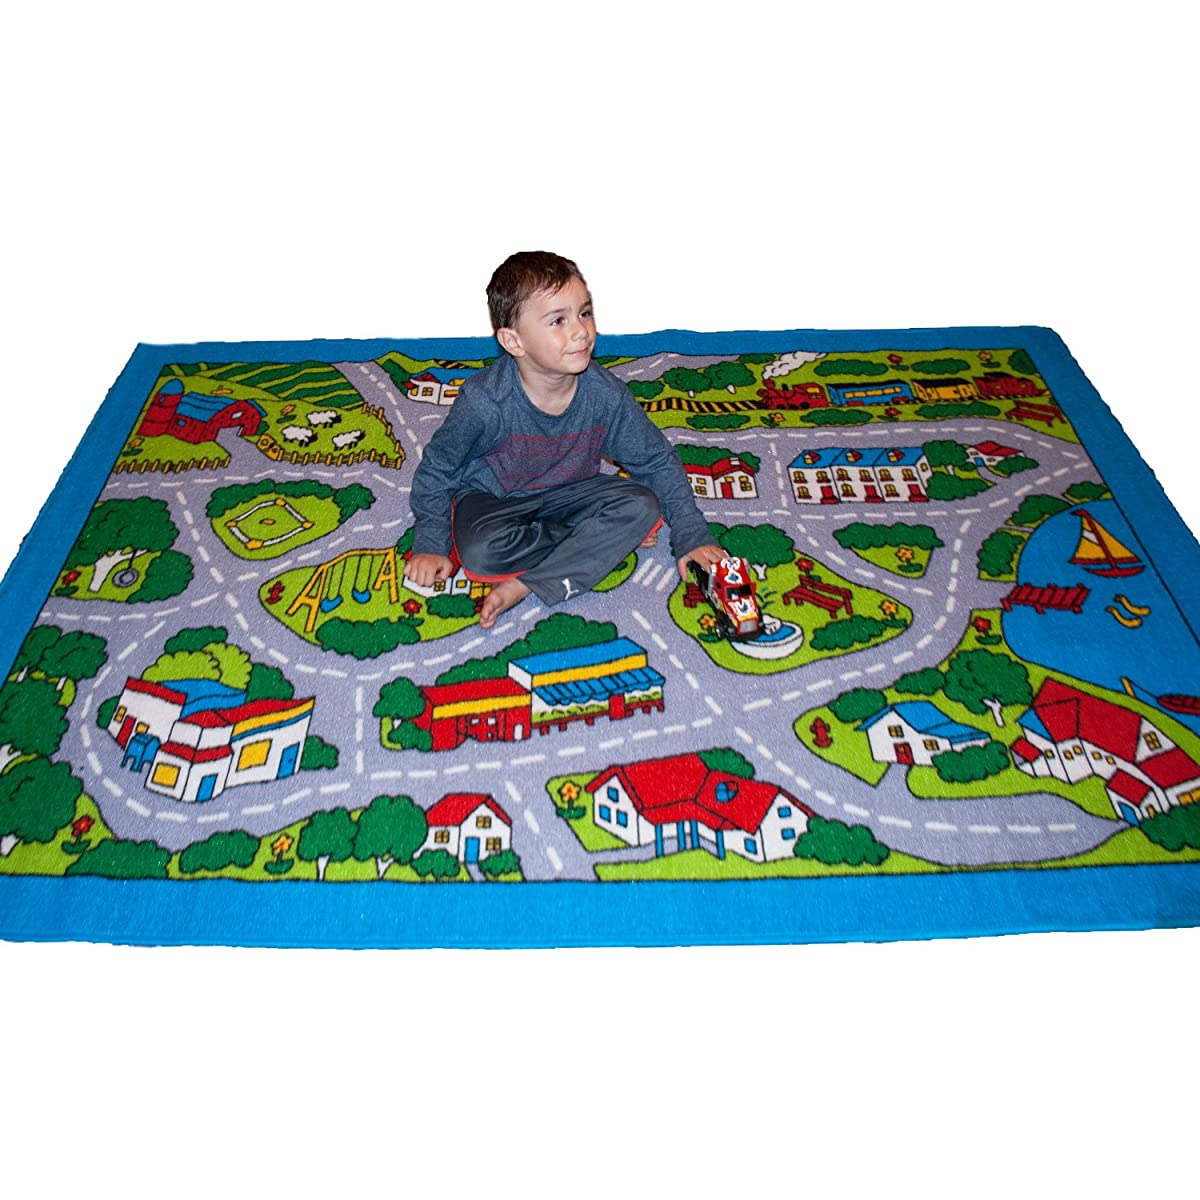 "Kids Rug Street Map in Grey 5 X 7 Children Area Rug - Non Skid Gel Backing (59"" x 82"")"